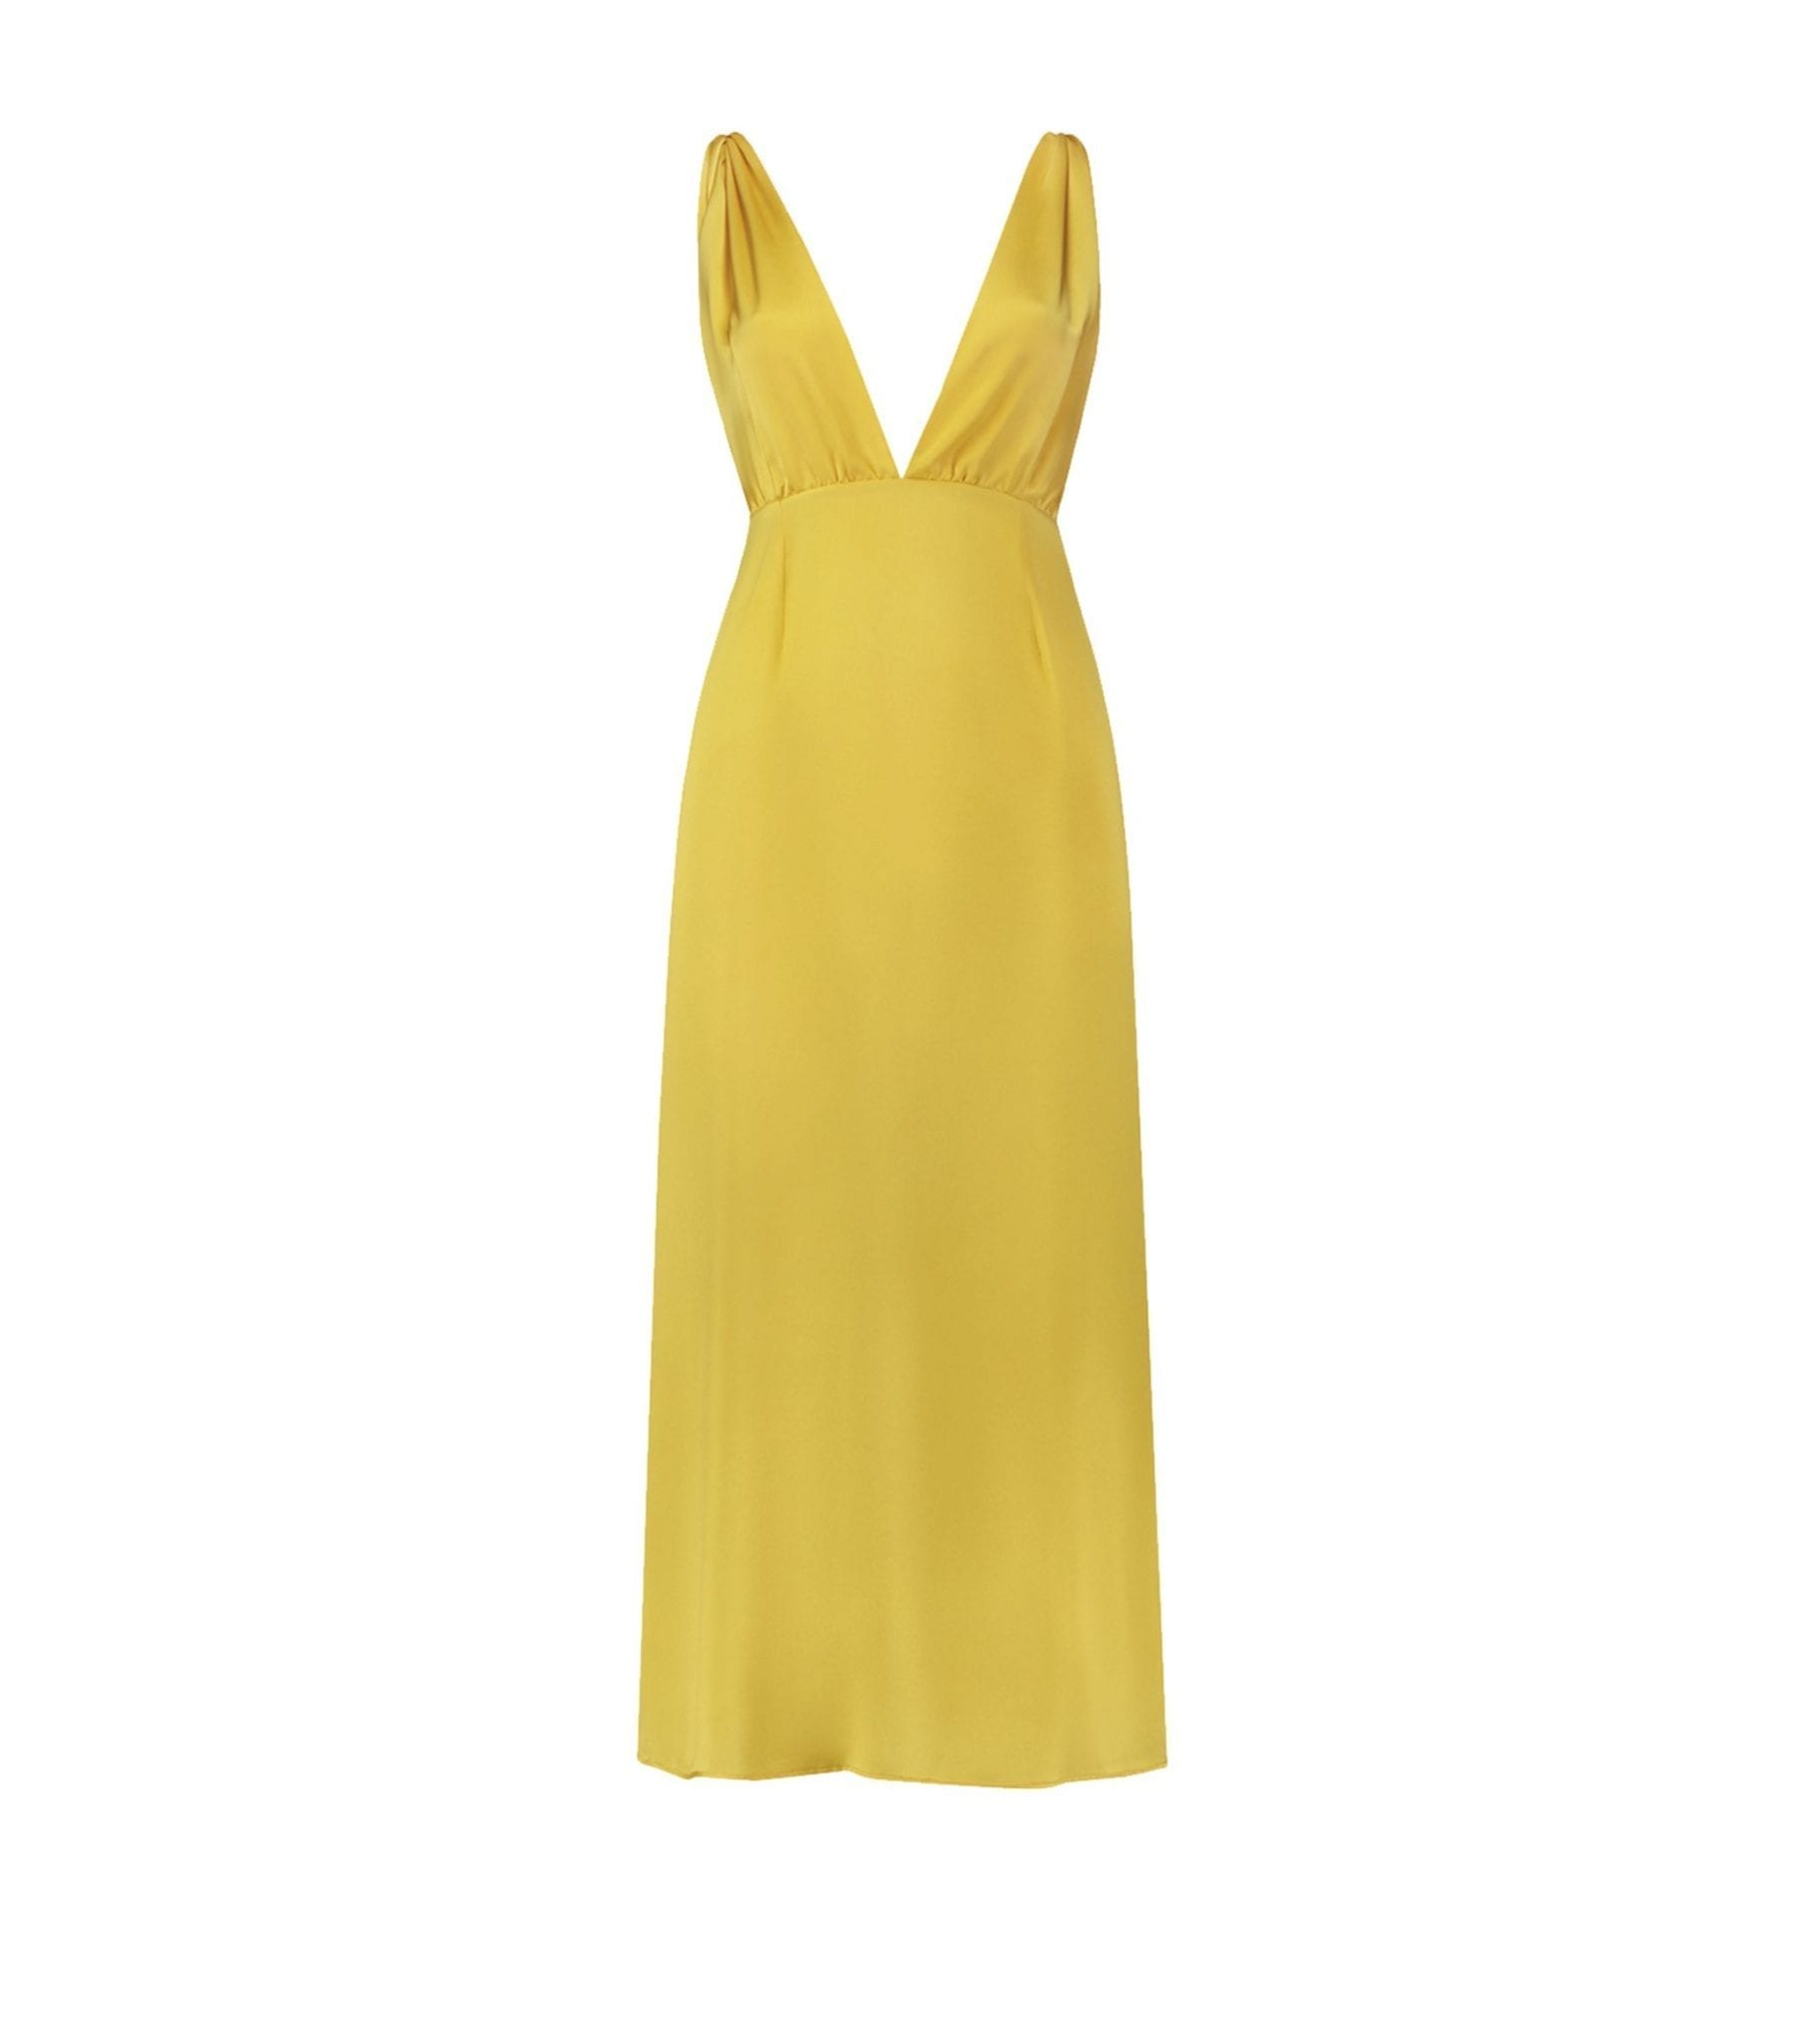 BERNADETTE John Sleeveless Dress